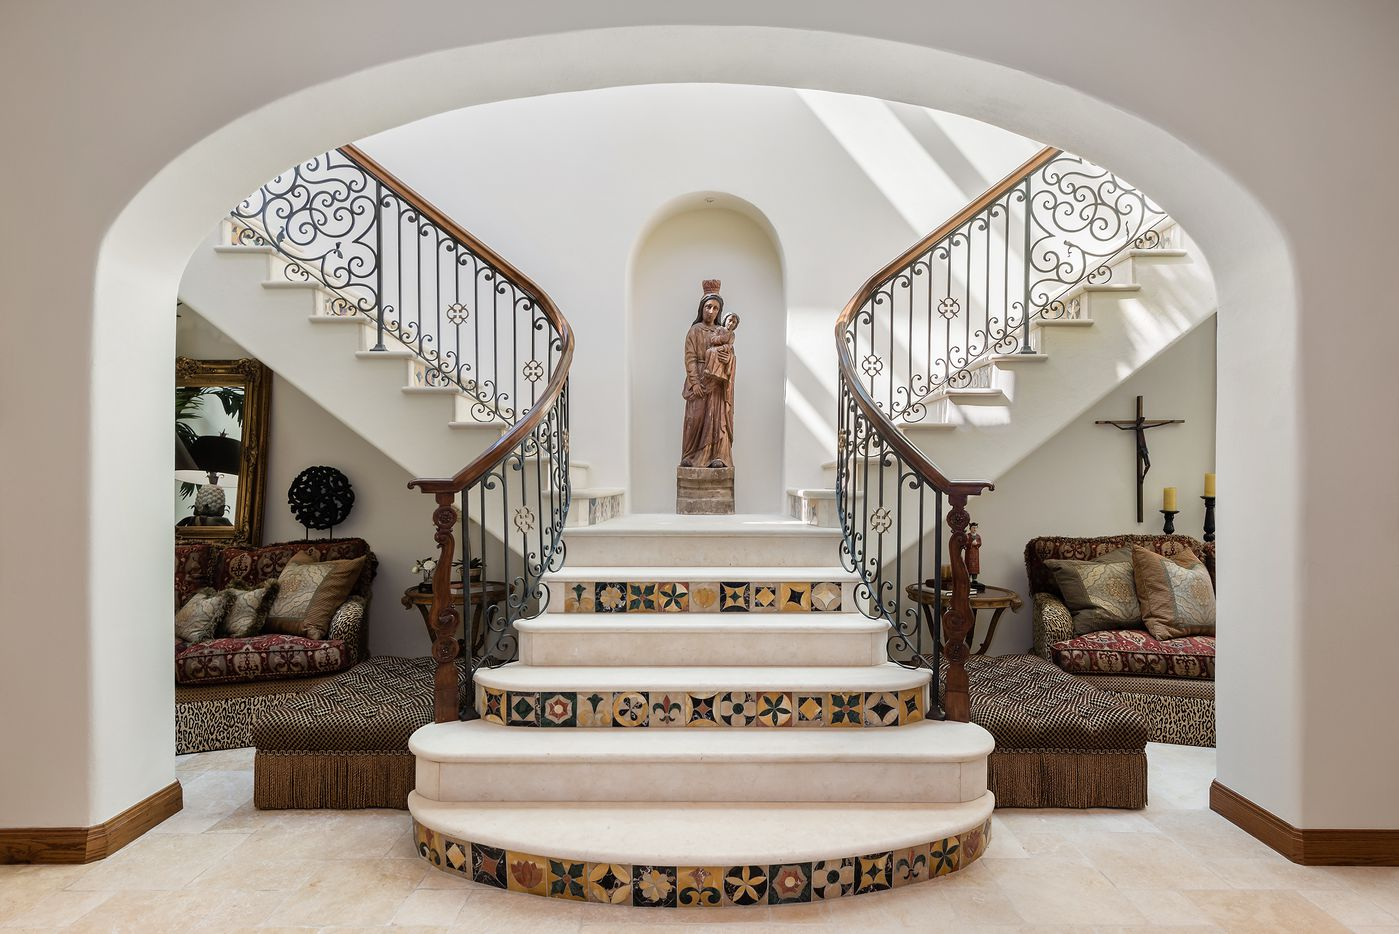 Take a look inside the home at 3601 Beverly Drive in Dallas, TX.